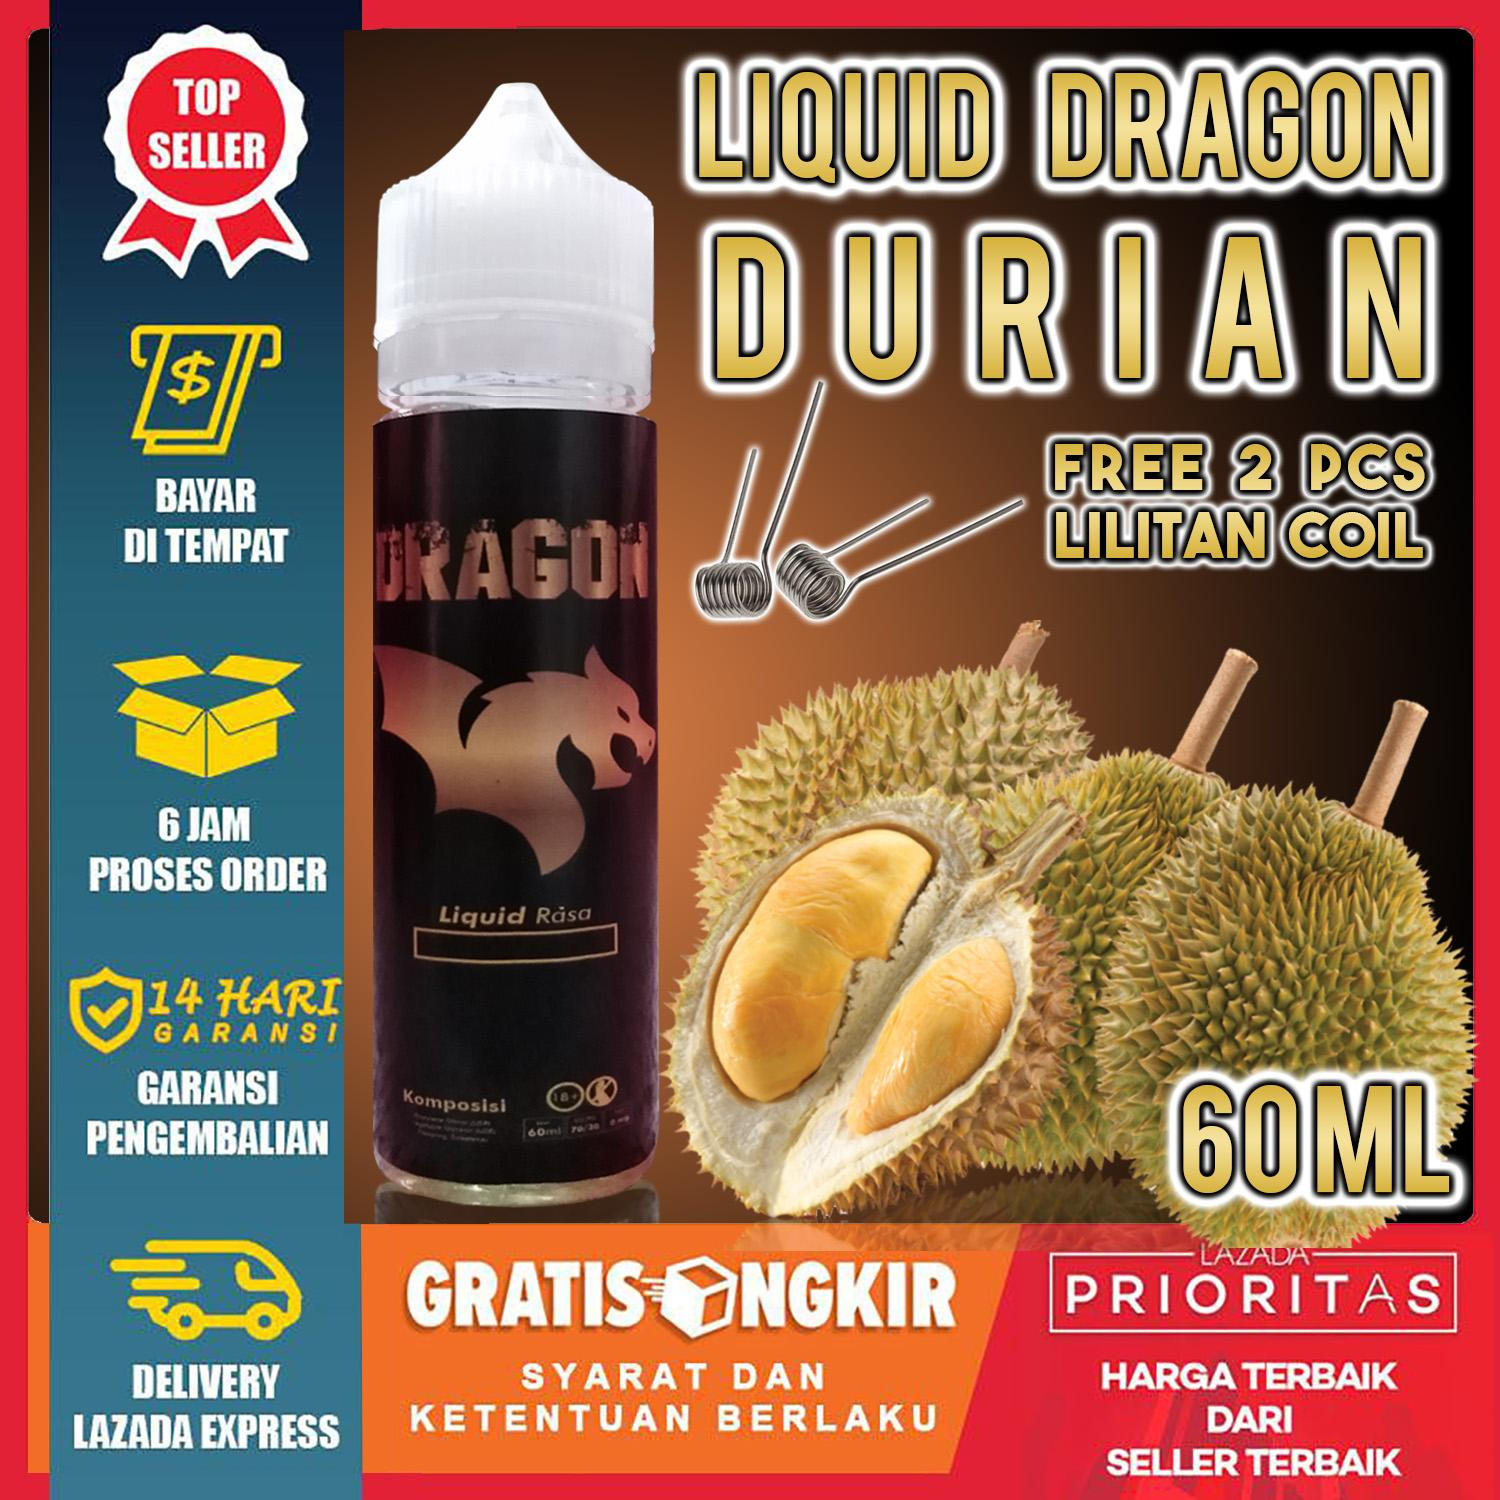 [ Free 2 Lilitan Coil ] Liquid Dragon 60ml Rasa Durian By Aka.com.